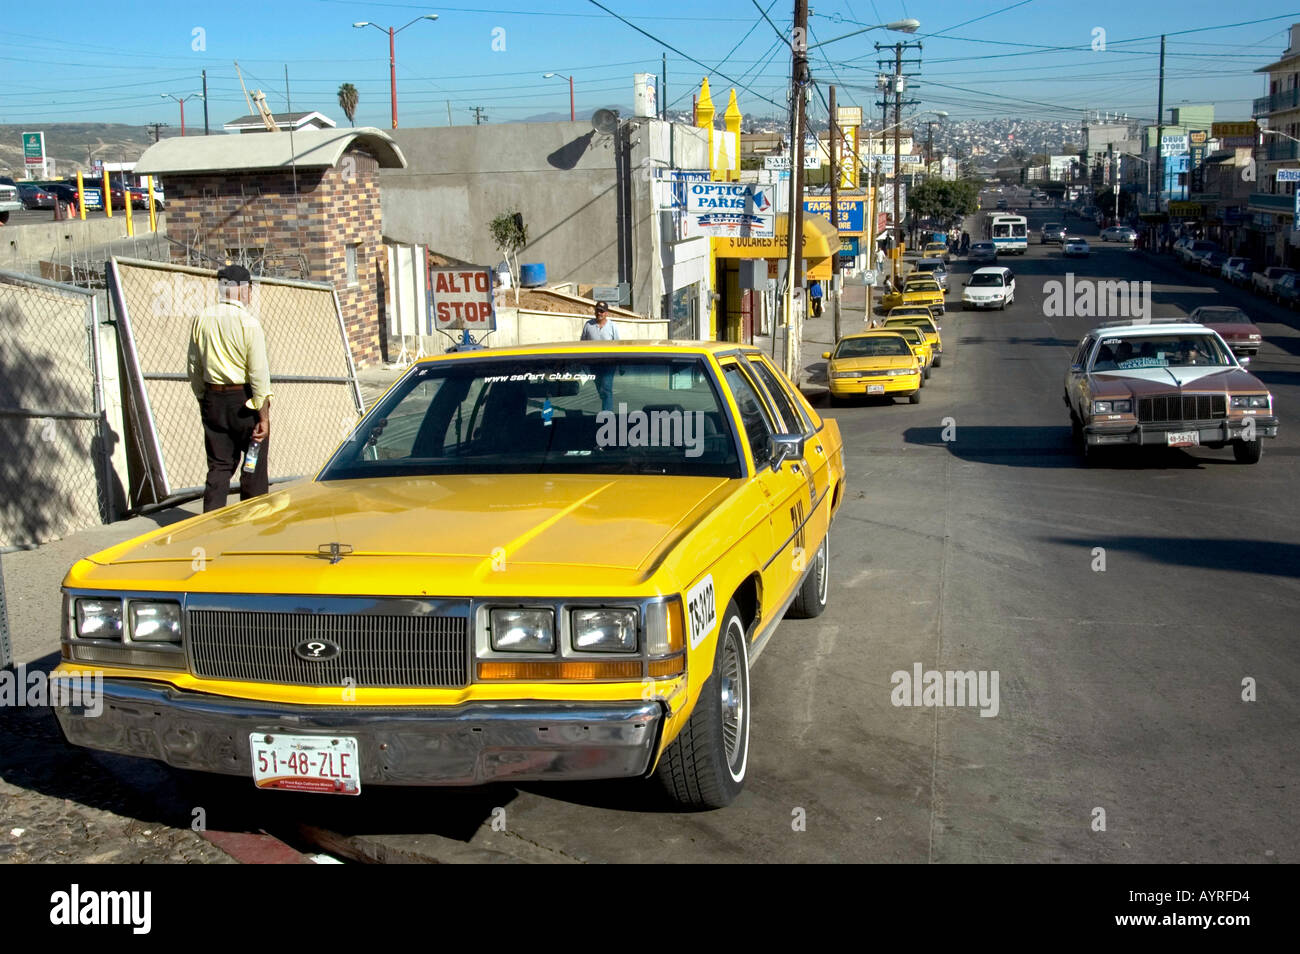 We Buy Used Cars >> OLD AMERICAN CARS USED AS TAXICABS IN THE CENTER OF TIJUANA MEXICO Stock Photo, Royalty Free ...